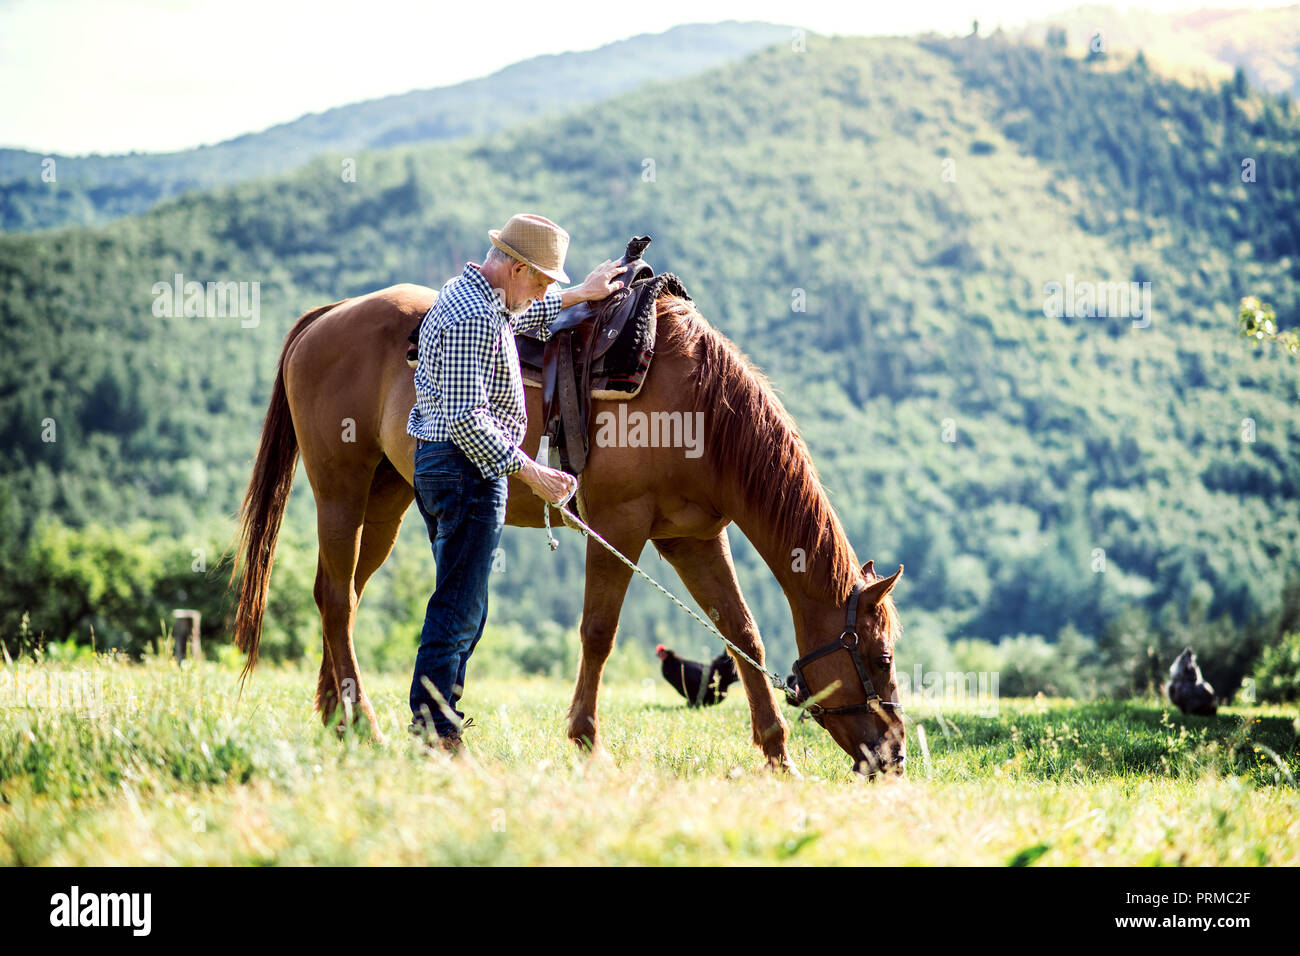 A Senior Man Holding A Horse By His Lead On A Pasture Stock Photo Alamy